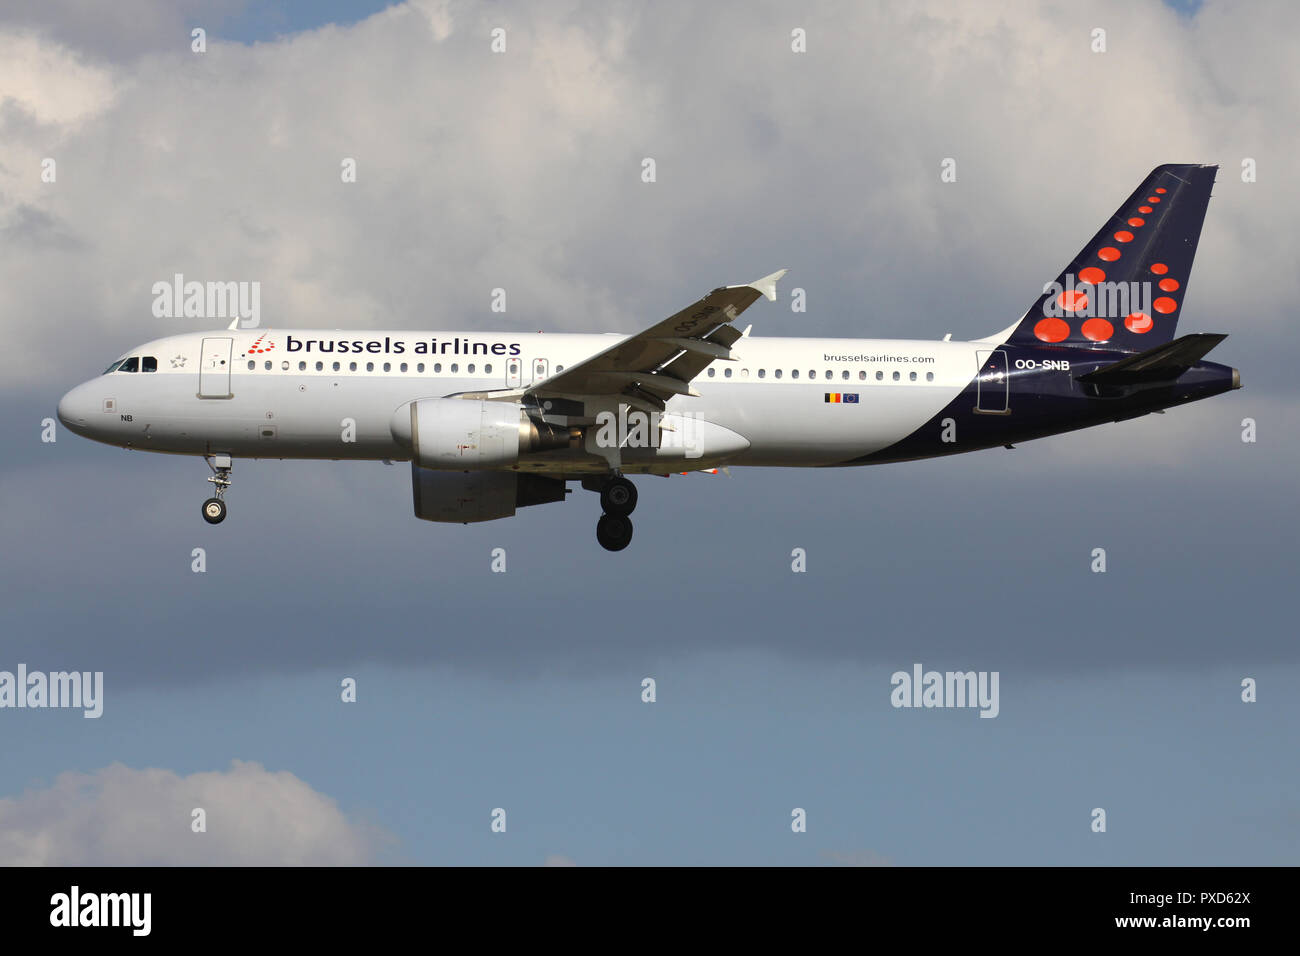 Belgian Brussels Airlines Airbus A320-200 with registration OO-SNB on short final for runway 01 of Brussels Airport. - Stock Image